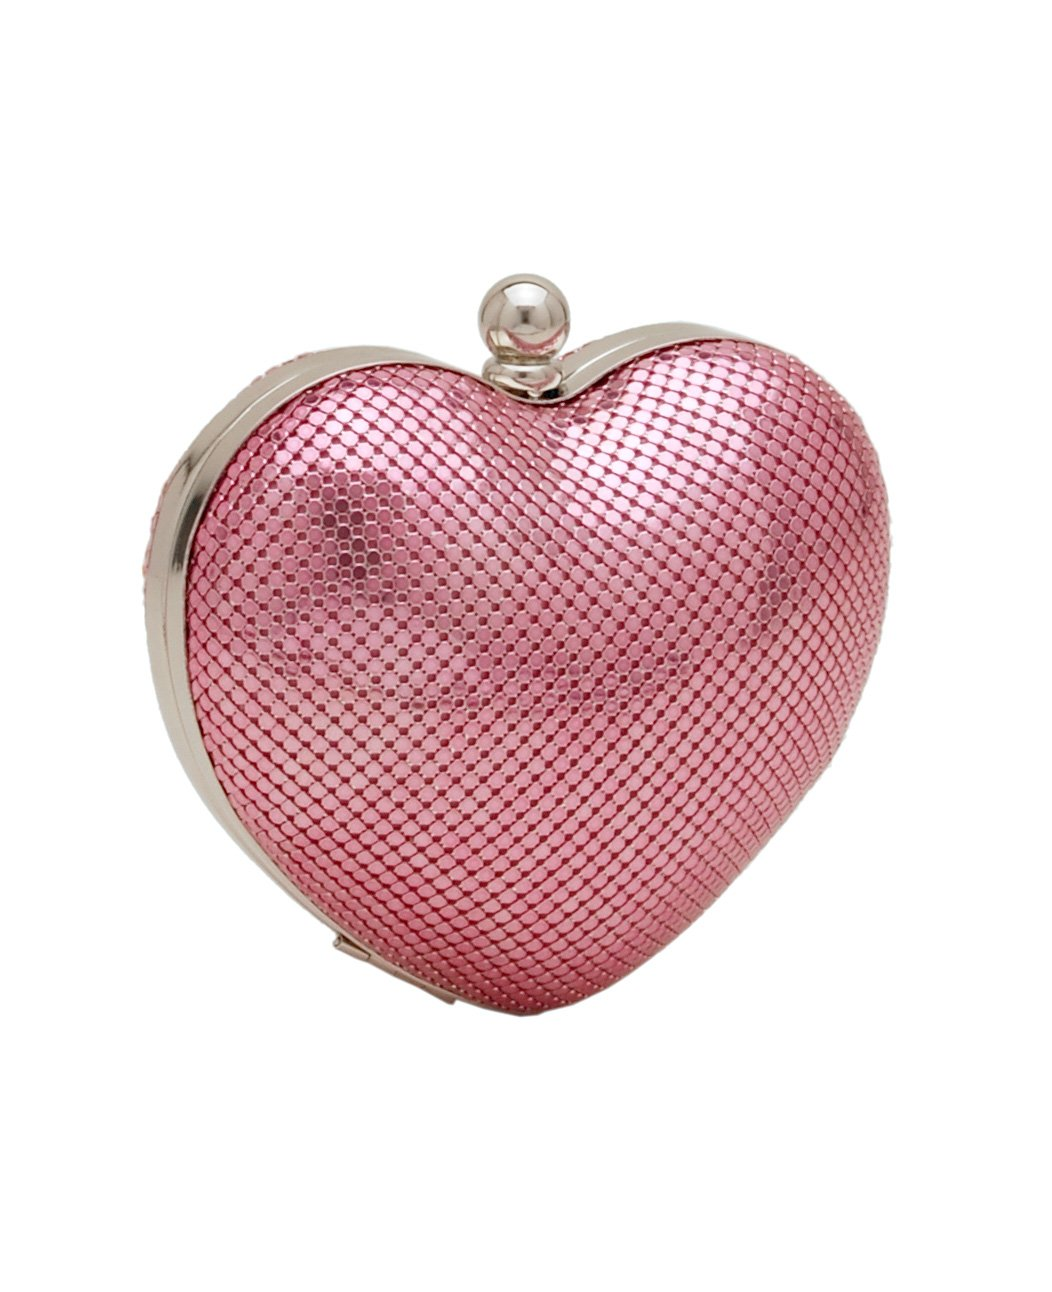 Whiting & Davis Women's Charity Heart Clutch, Pink, One Size